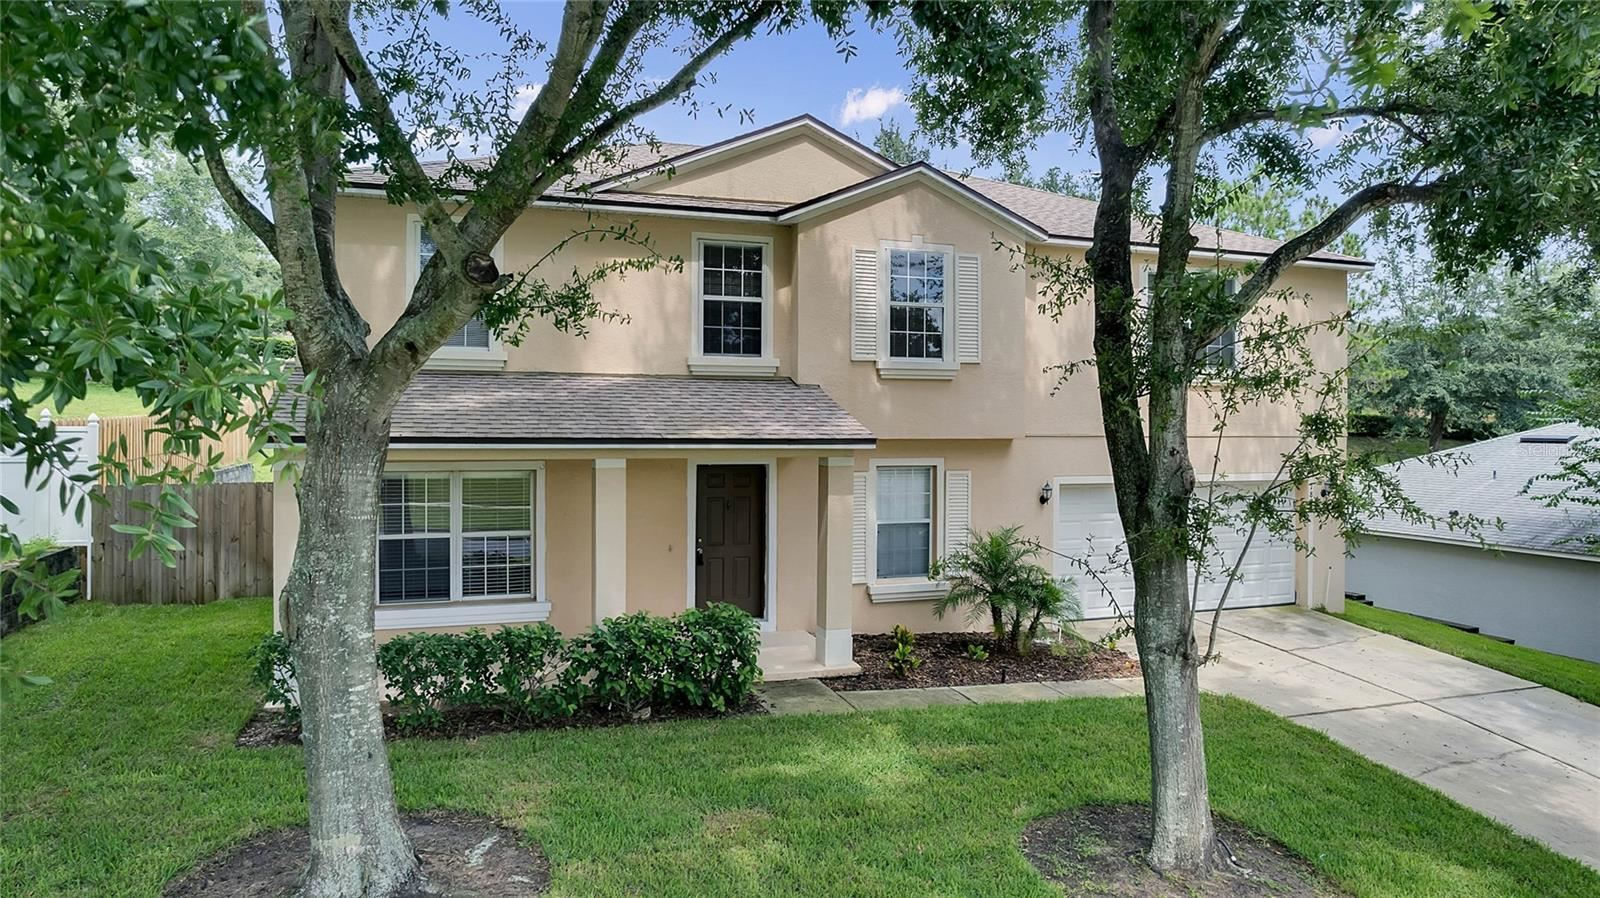 Photo of 1834 VALE DRIVE, CLERMONT, FL 34711 (MLS # O5975197)